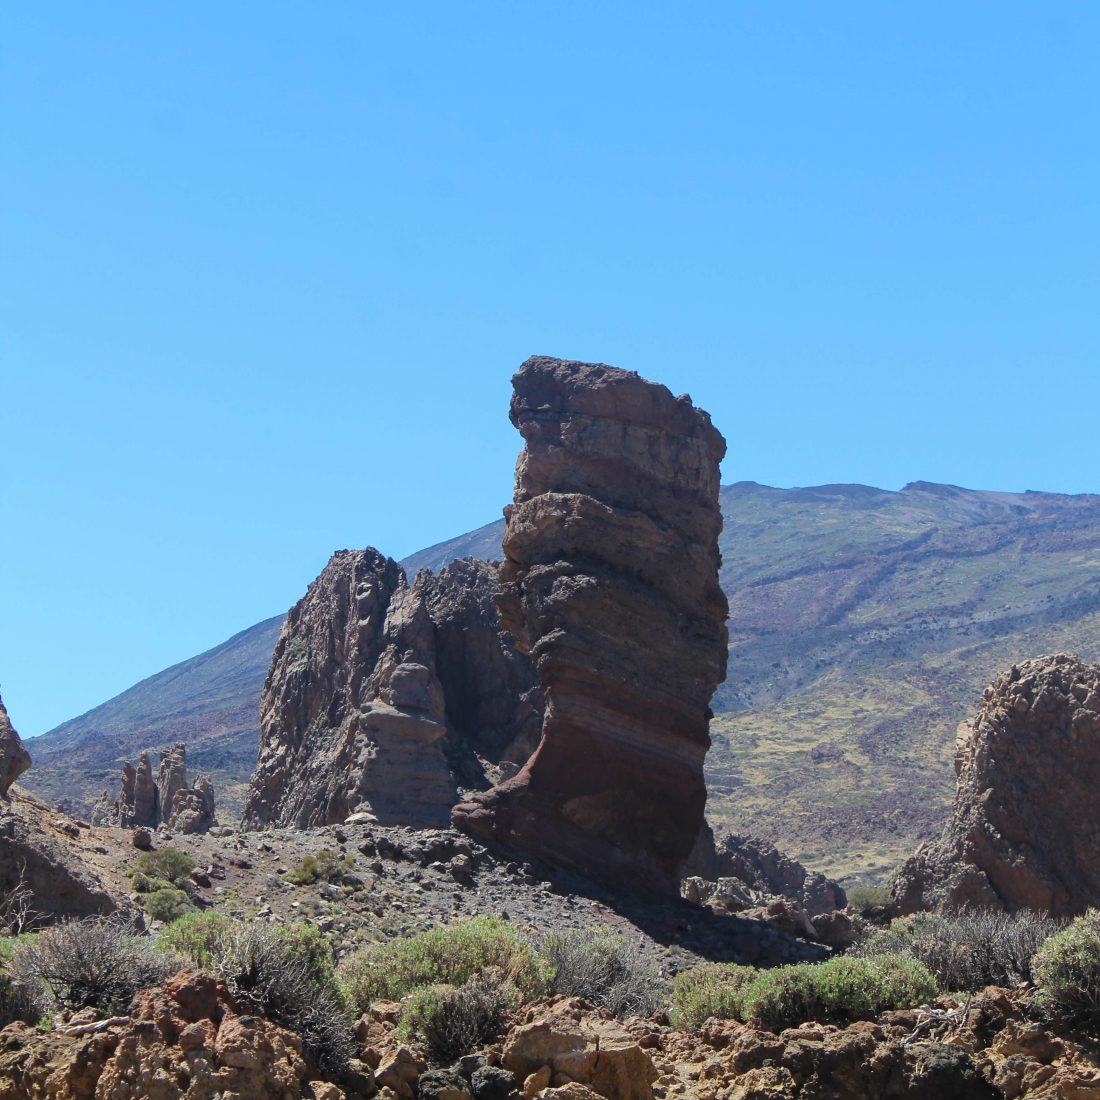 10 things to see and do in Tenerife